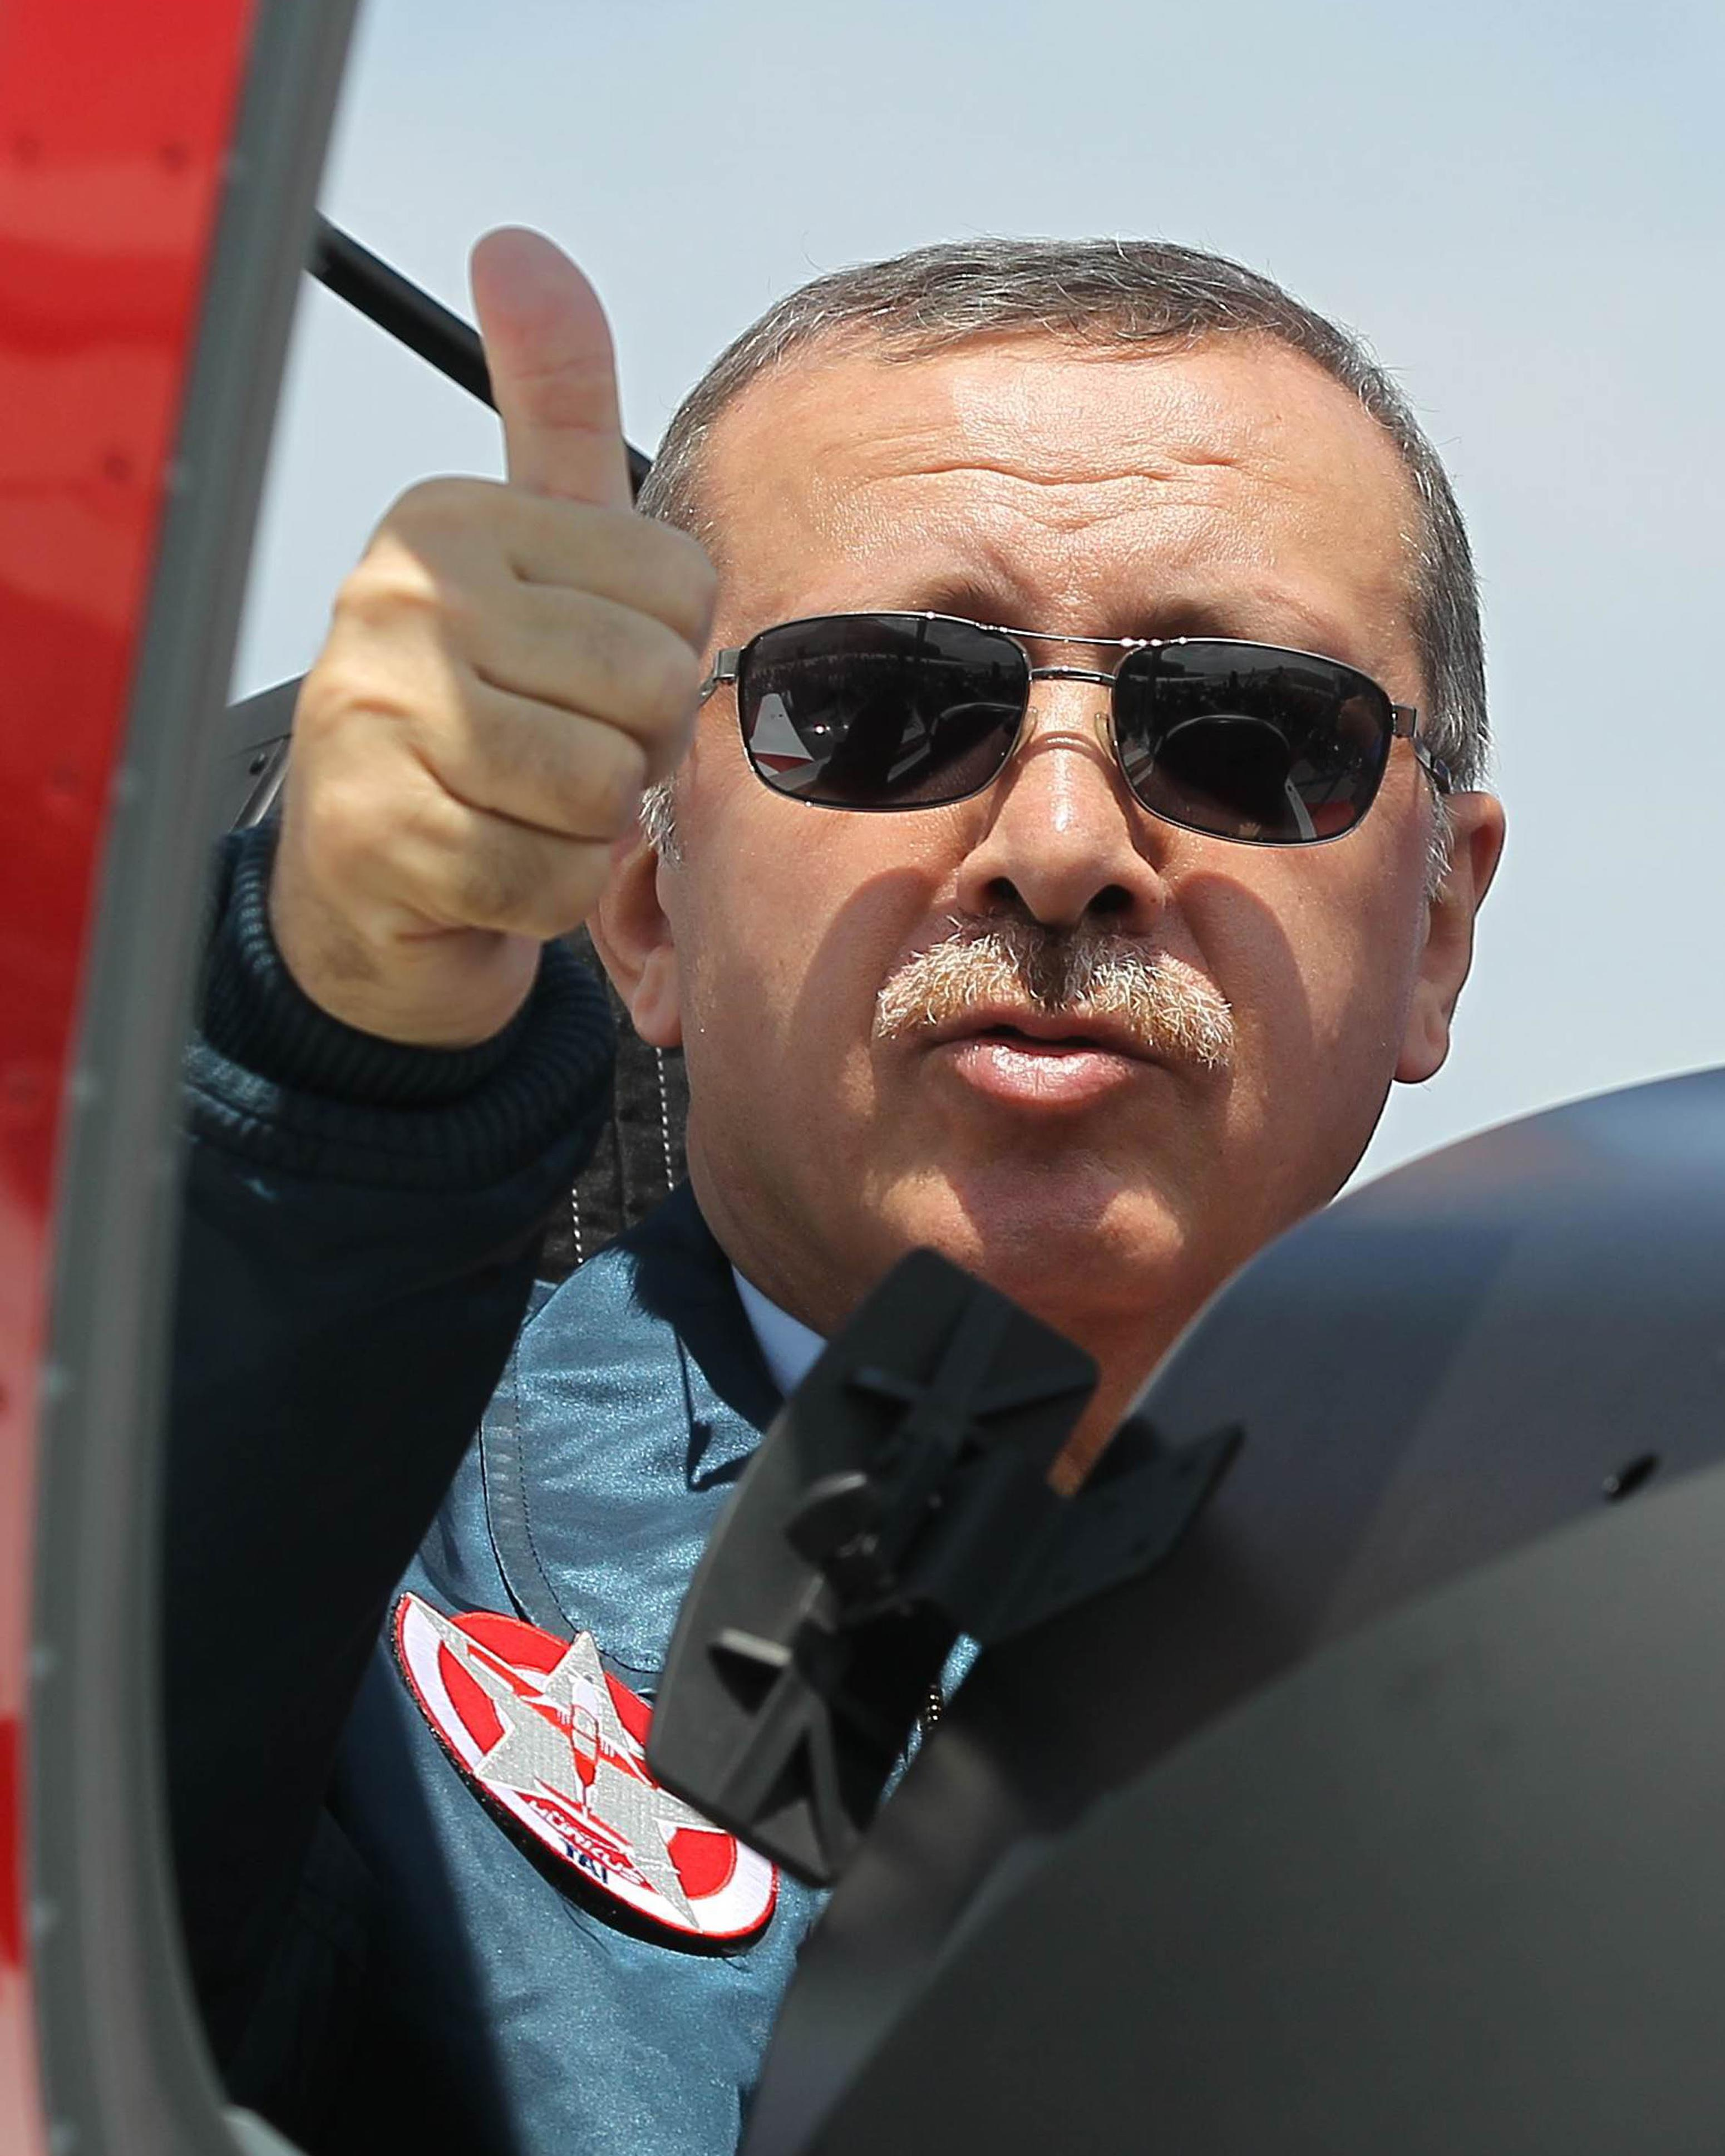 "Turkish Prime Minister Recep Tayyip Erdogan gestures while sitting in the cockpit of Hurkus (Freebird), Turkey's first locally produced military training plane, a two-seat turboprop plane, unveiled during a ceremony outside Ankara, Turkey, Wednesday, June 27, 2012. Erdogan kept up his pressure on Syria on Wednesday, saying ""we would never hesitate to respond with all our power to hostile acts, attacks and threats against us."" (AP Photo)"